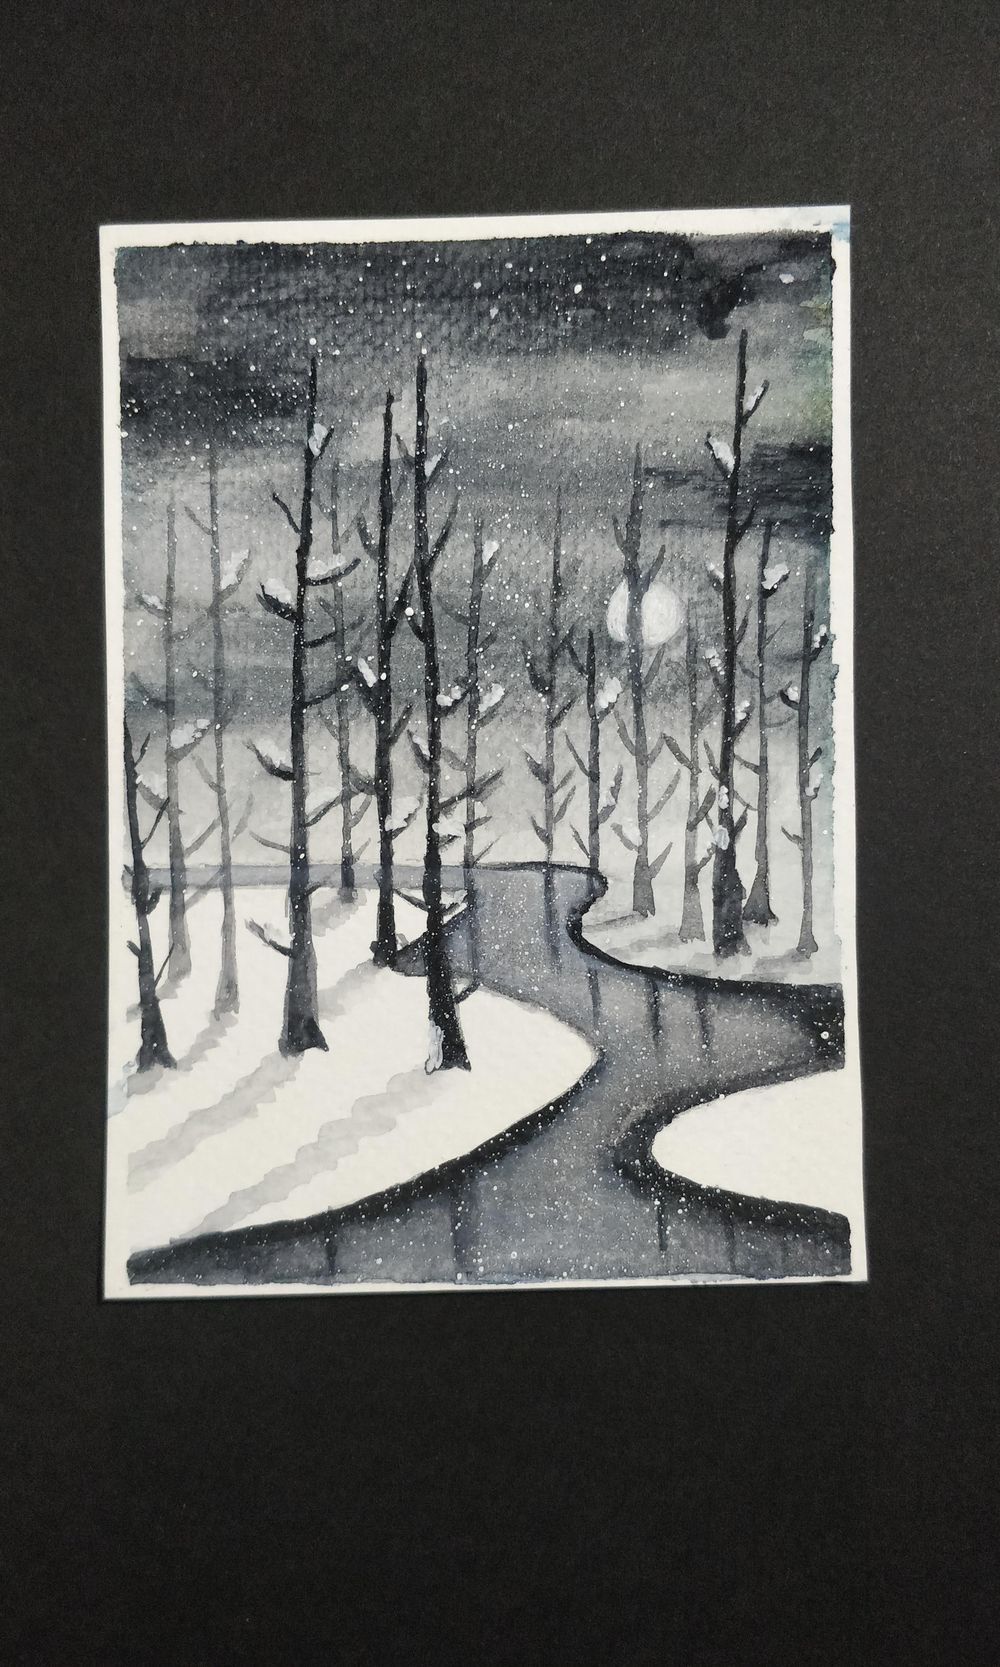 My attempt at snowy landscapes - image 2 - student project